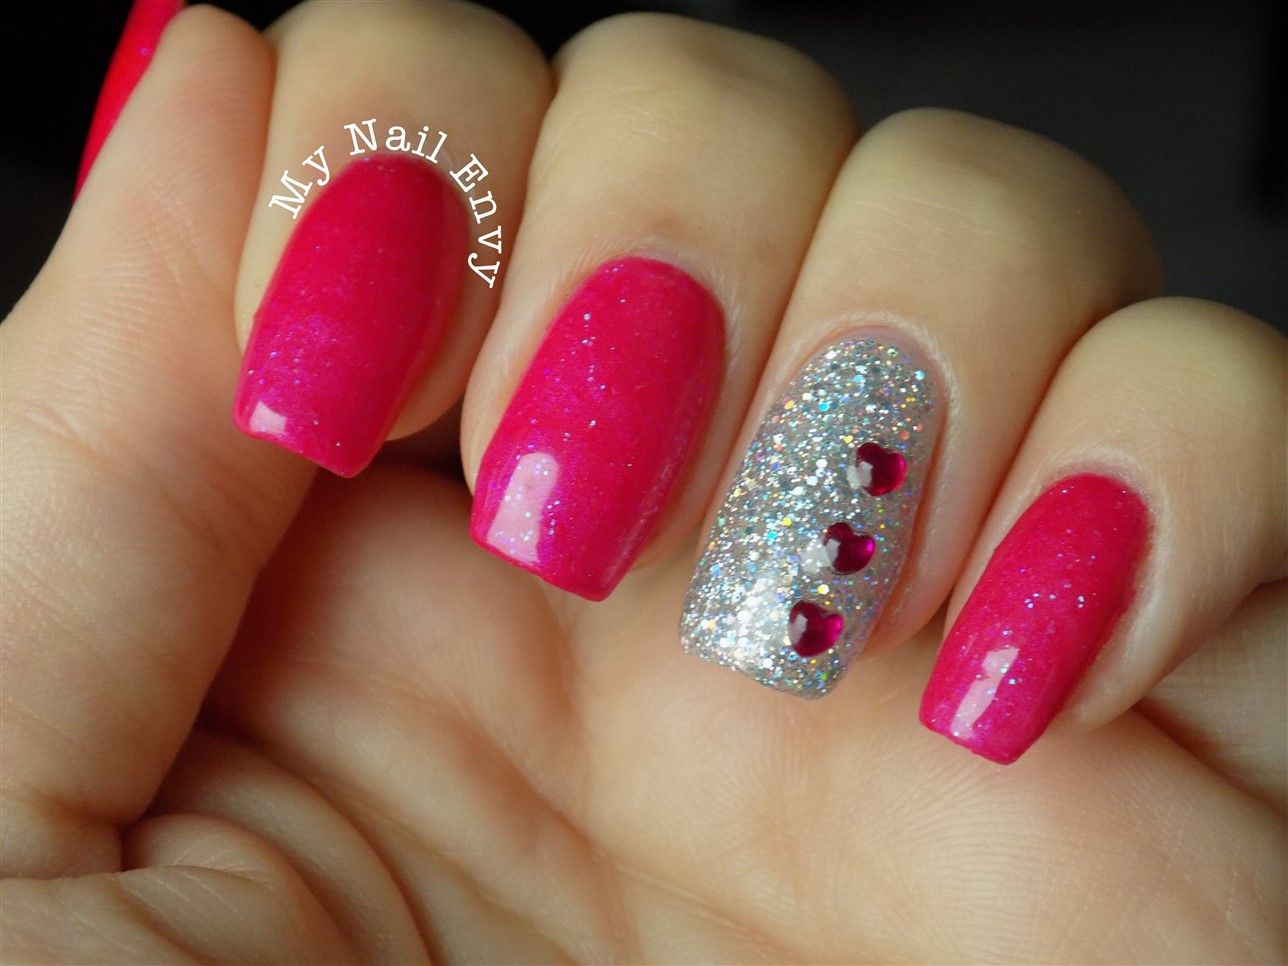 Valentines Nails – My Nail Envy CND additives, glitter, sparkly pink ...